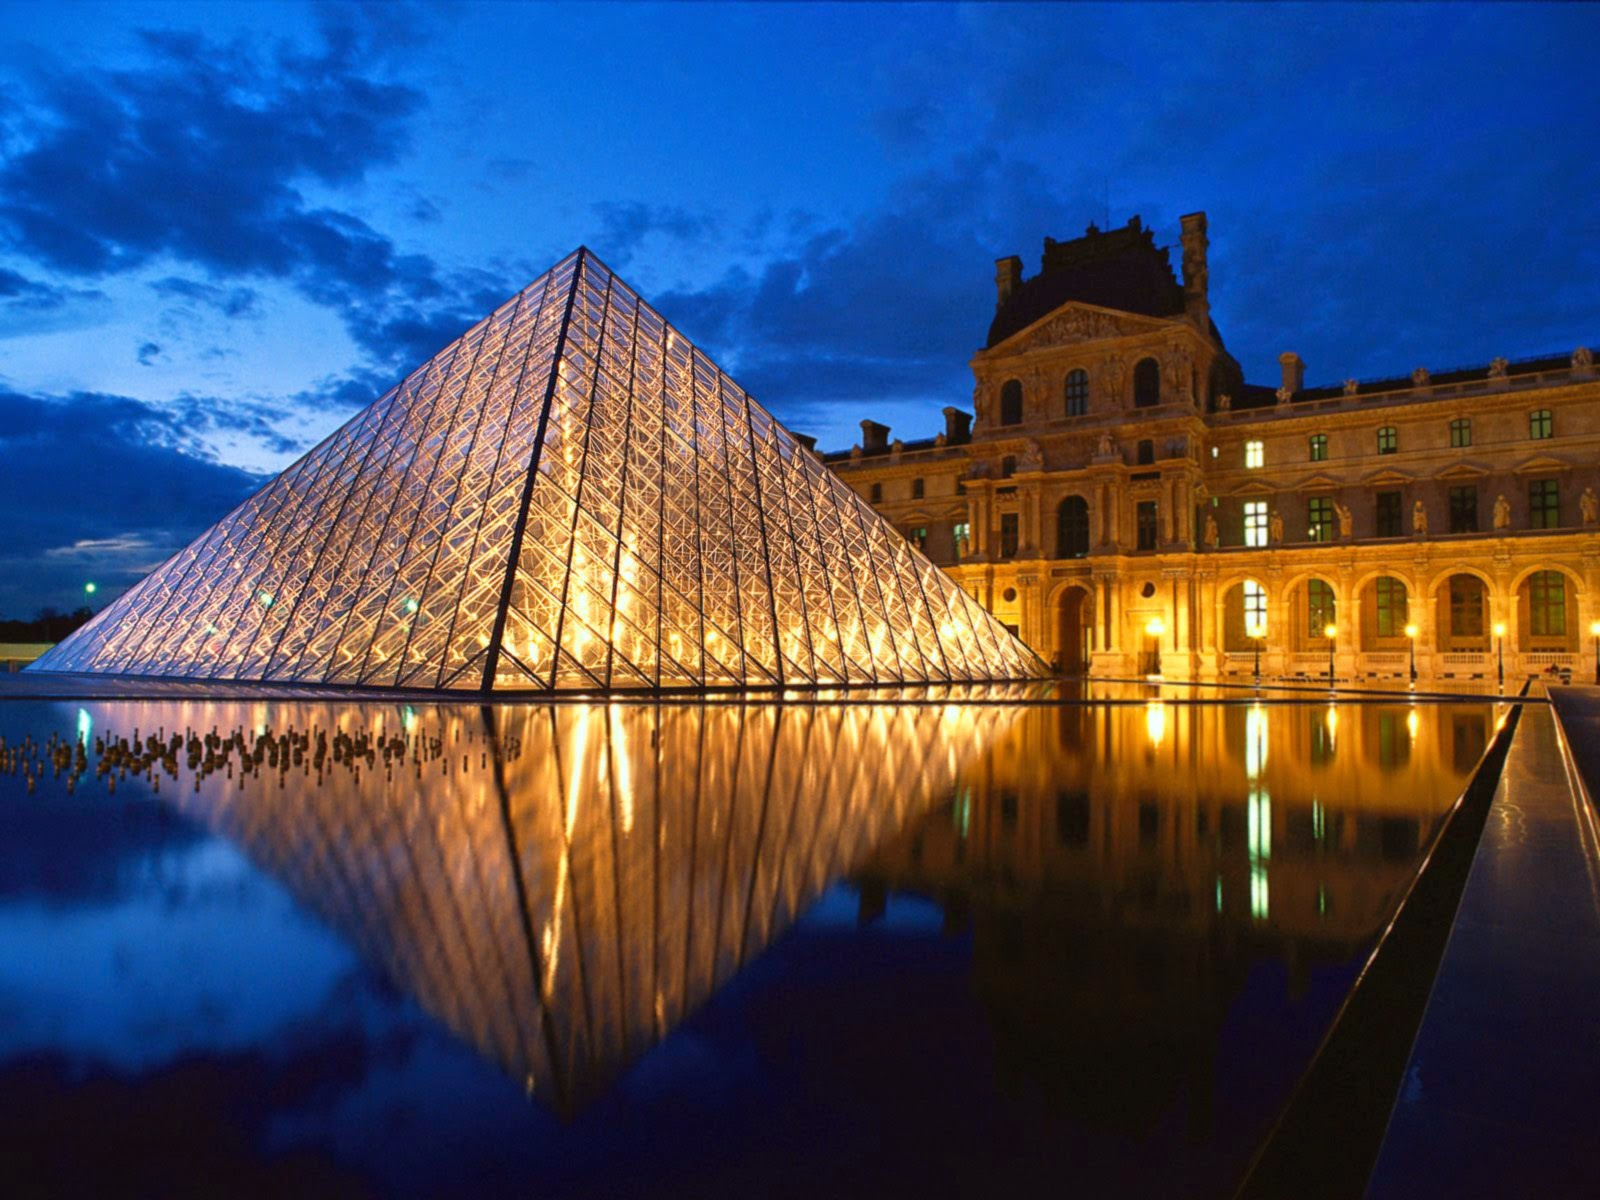 Pyramid at Louvre Museum - Paris, France